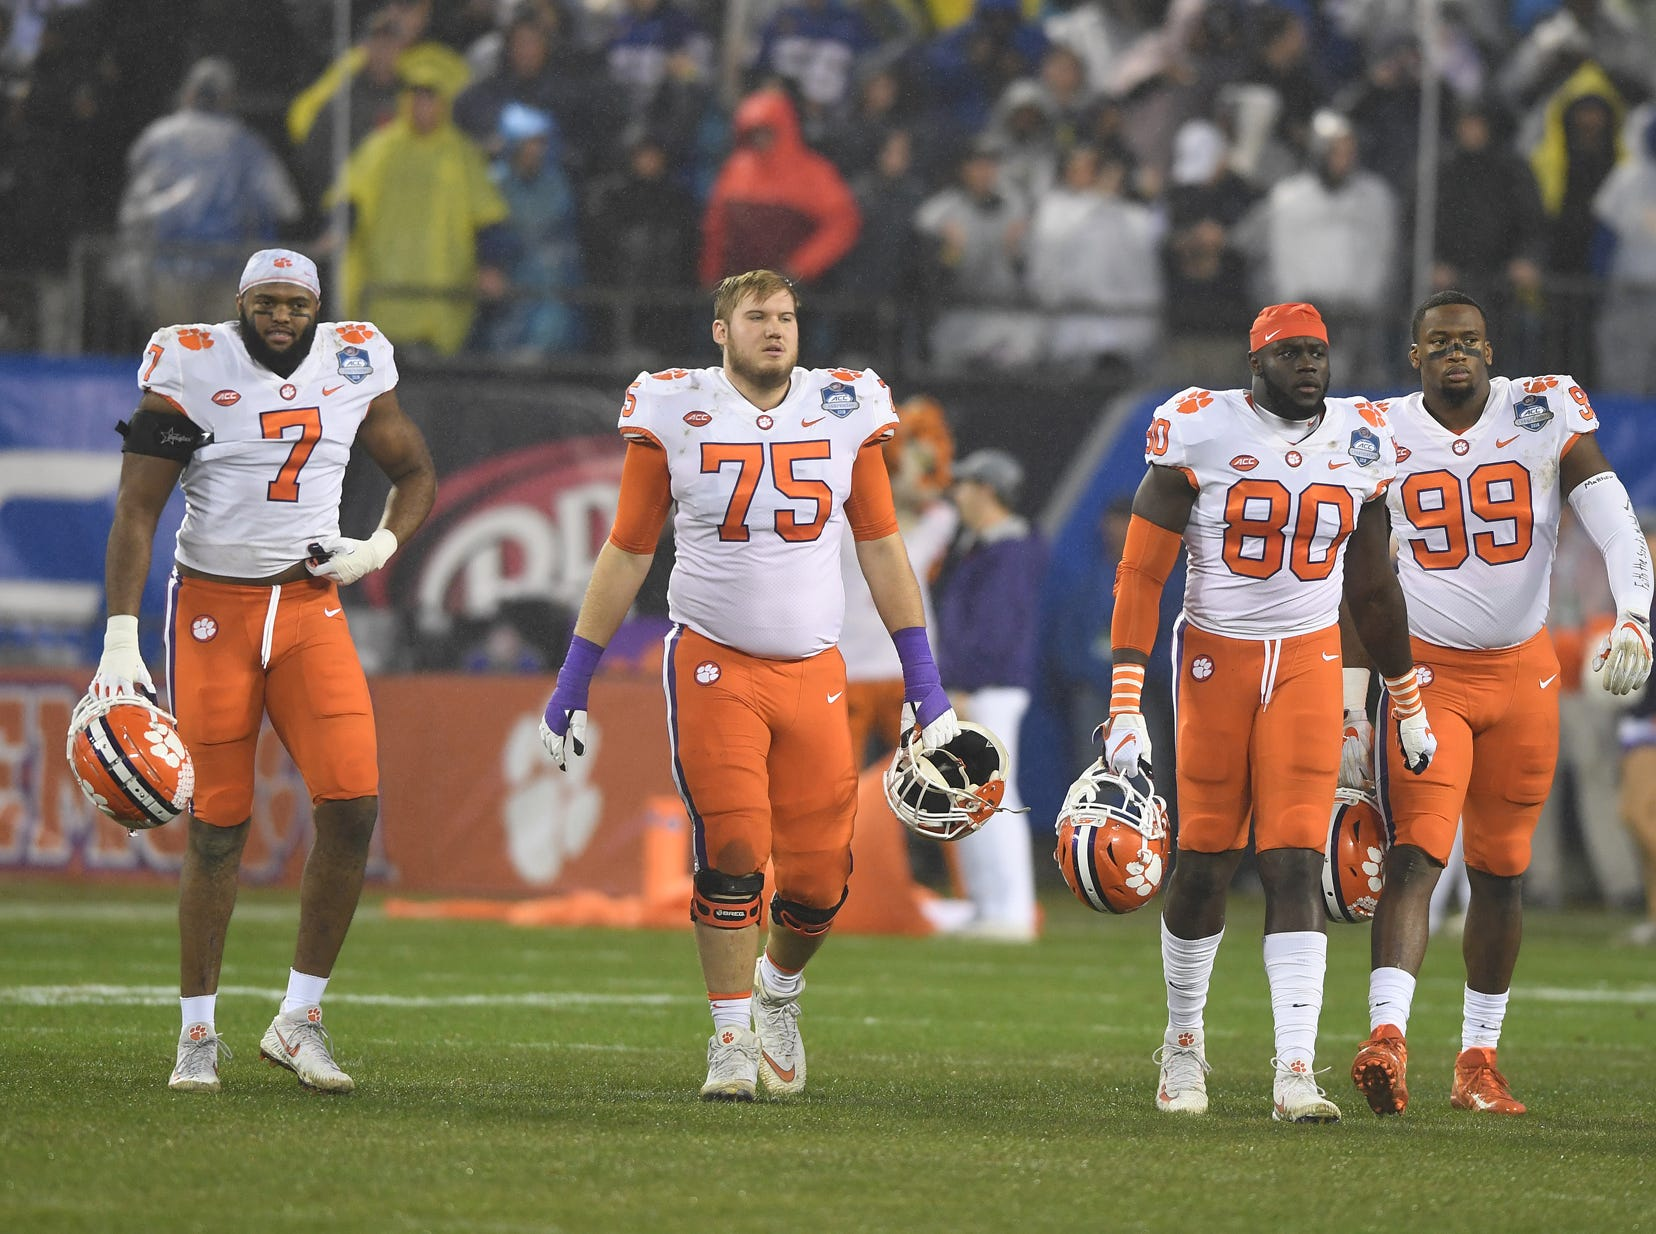 Clemson captions defensive lineman Austin Bryant (7), offensive lineman Mitch Hyatt (75), tight end Milan Richard (80), and defensive lineman Clelin Ferrell (99) during pregame of the Dr. Pepper ACC Championship at Bank of America Stadium in Charlotte, N.C. Saturday, December 1, 2018.